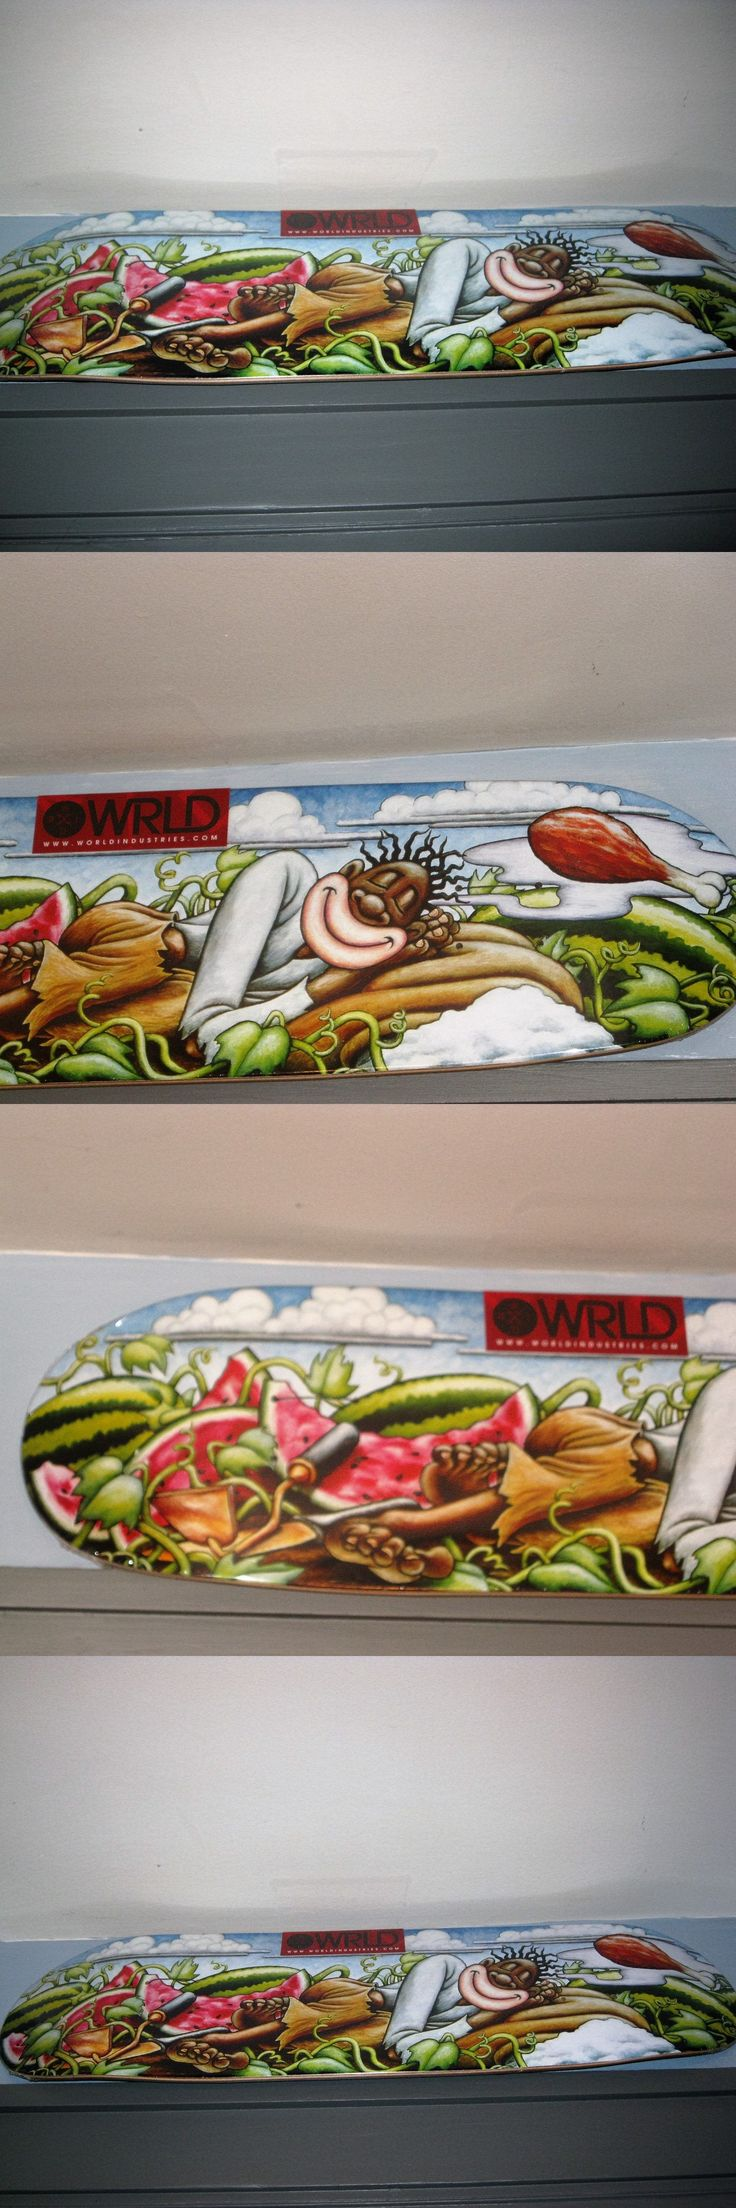 Decks 16263: Jovontae Turner World Industries Skateboard Deck Napping -> BUY IT NOW ONLY: $299.99 on eBay!